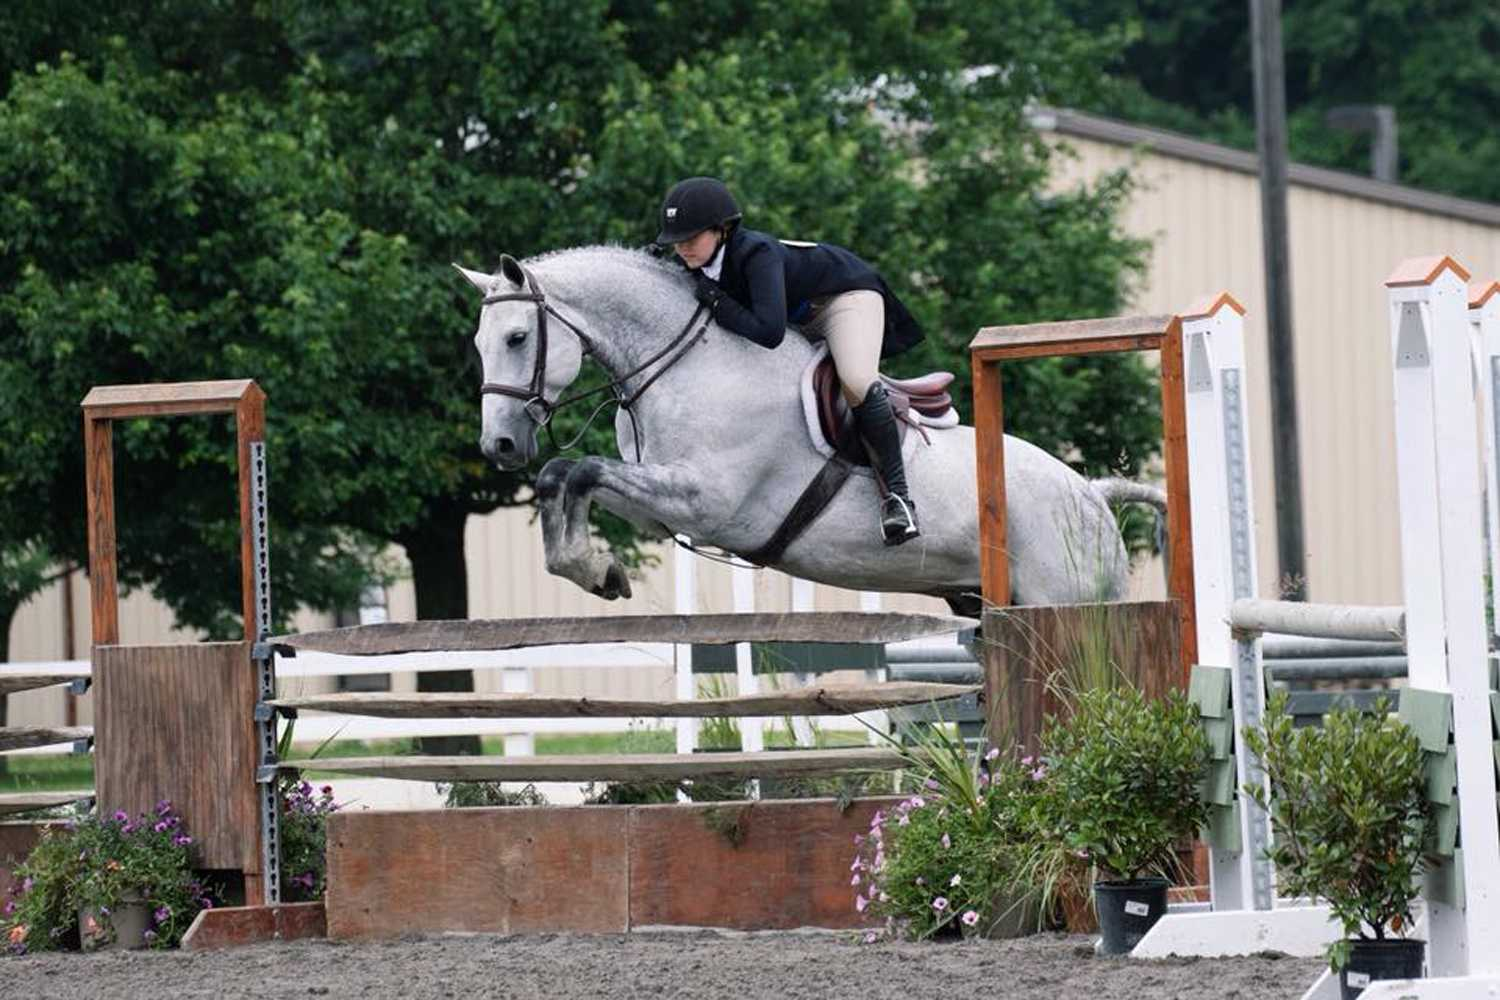 Sophomore biology major Haley Maher competes at State College with her horse Perry.